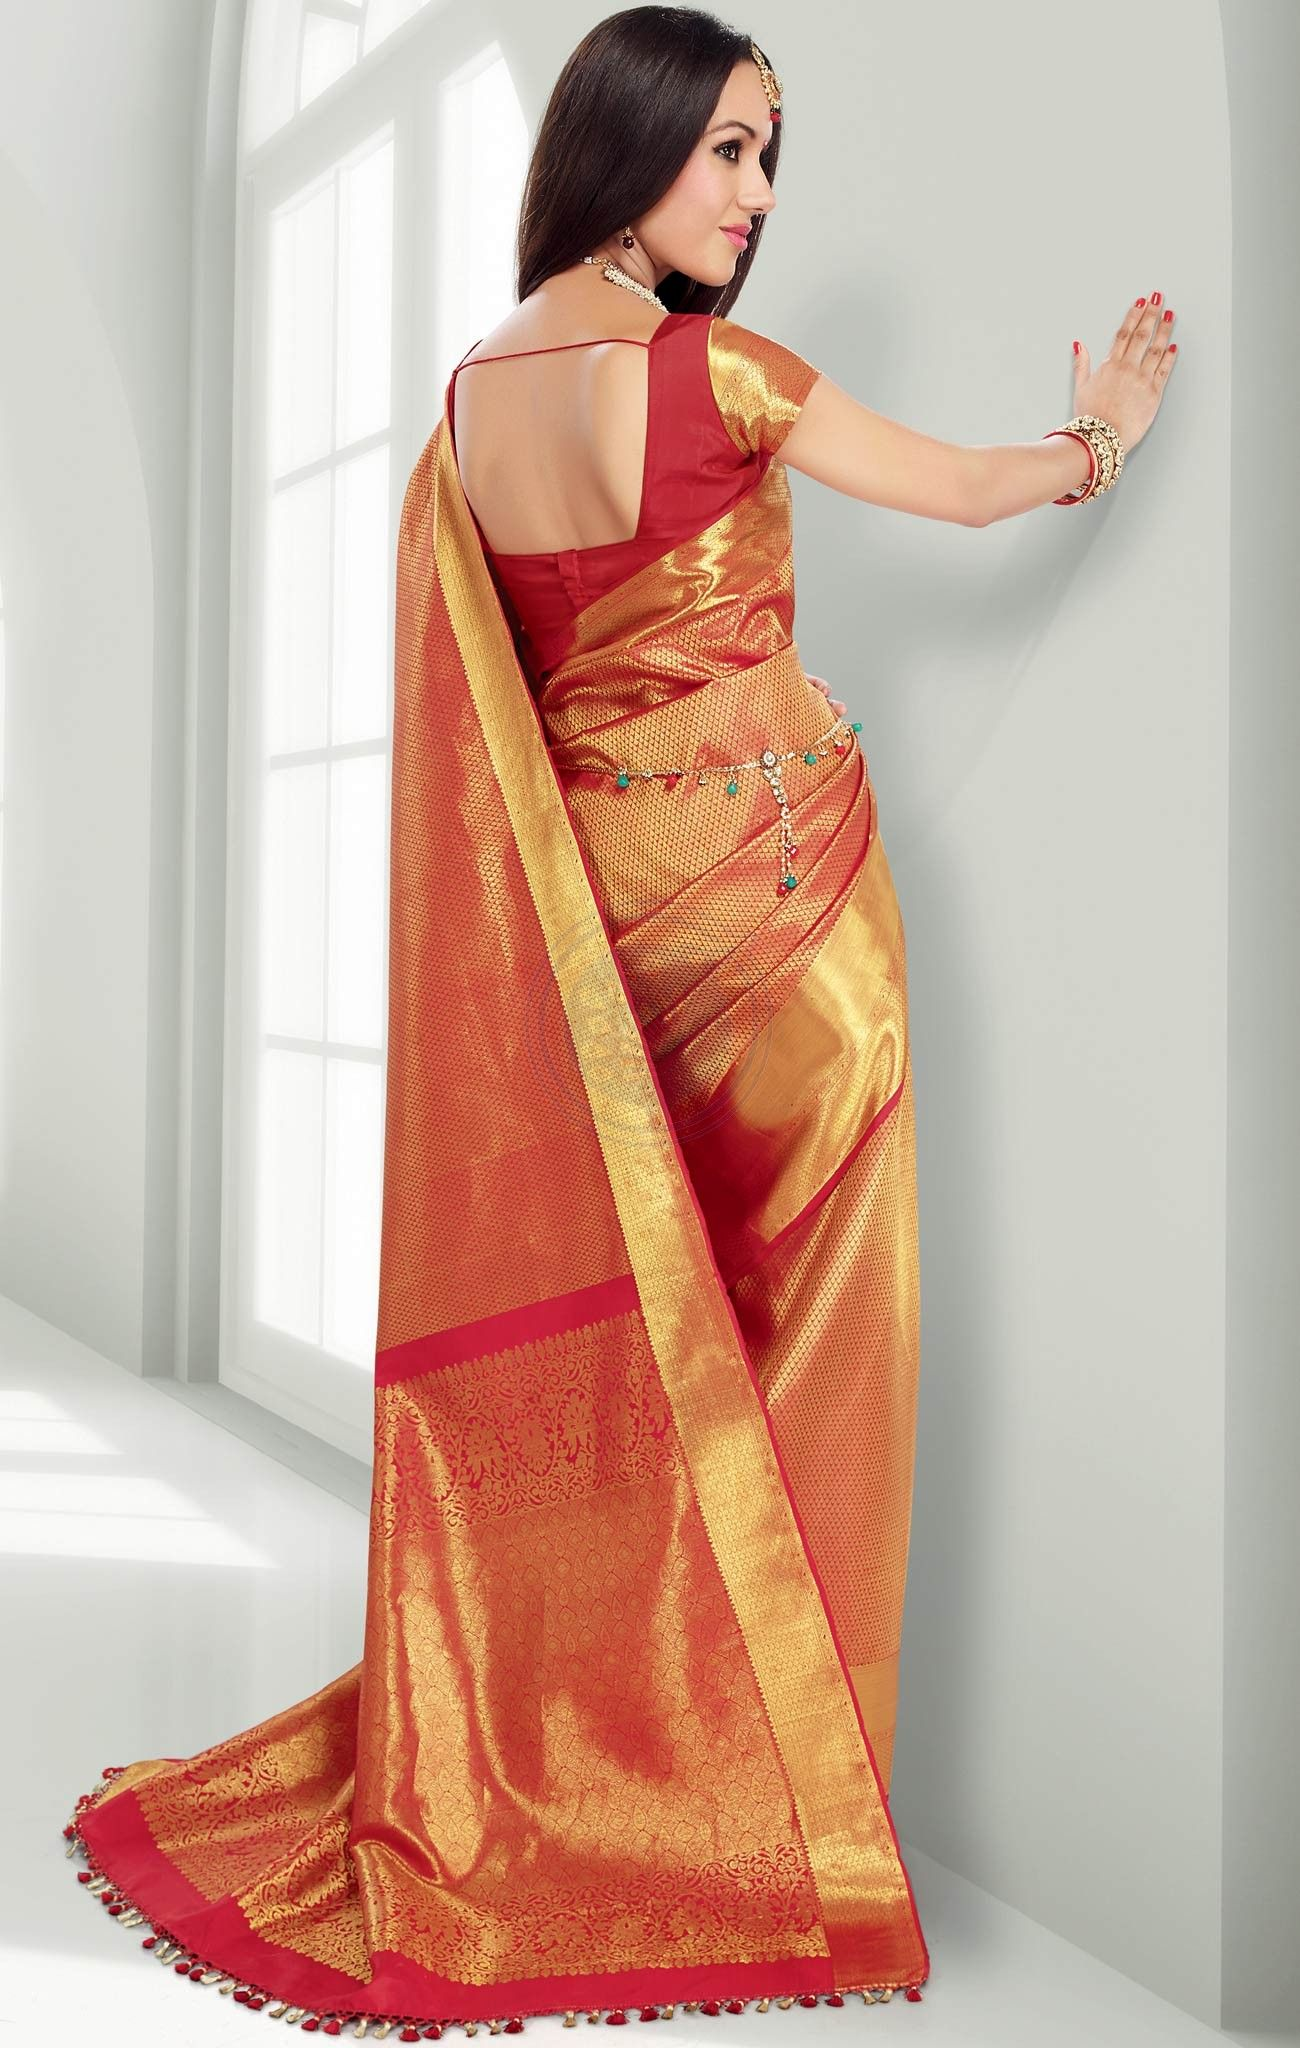 ce4de1a0dc Red pure silk saree with gold motifs throughout the saree and a wide  one-side gold border - RmKV Silks